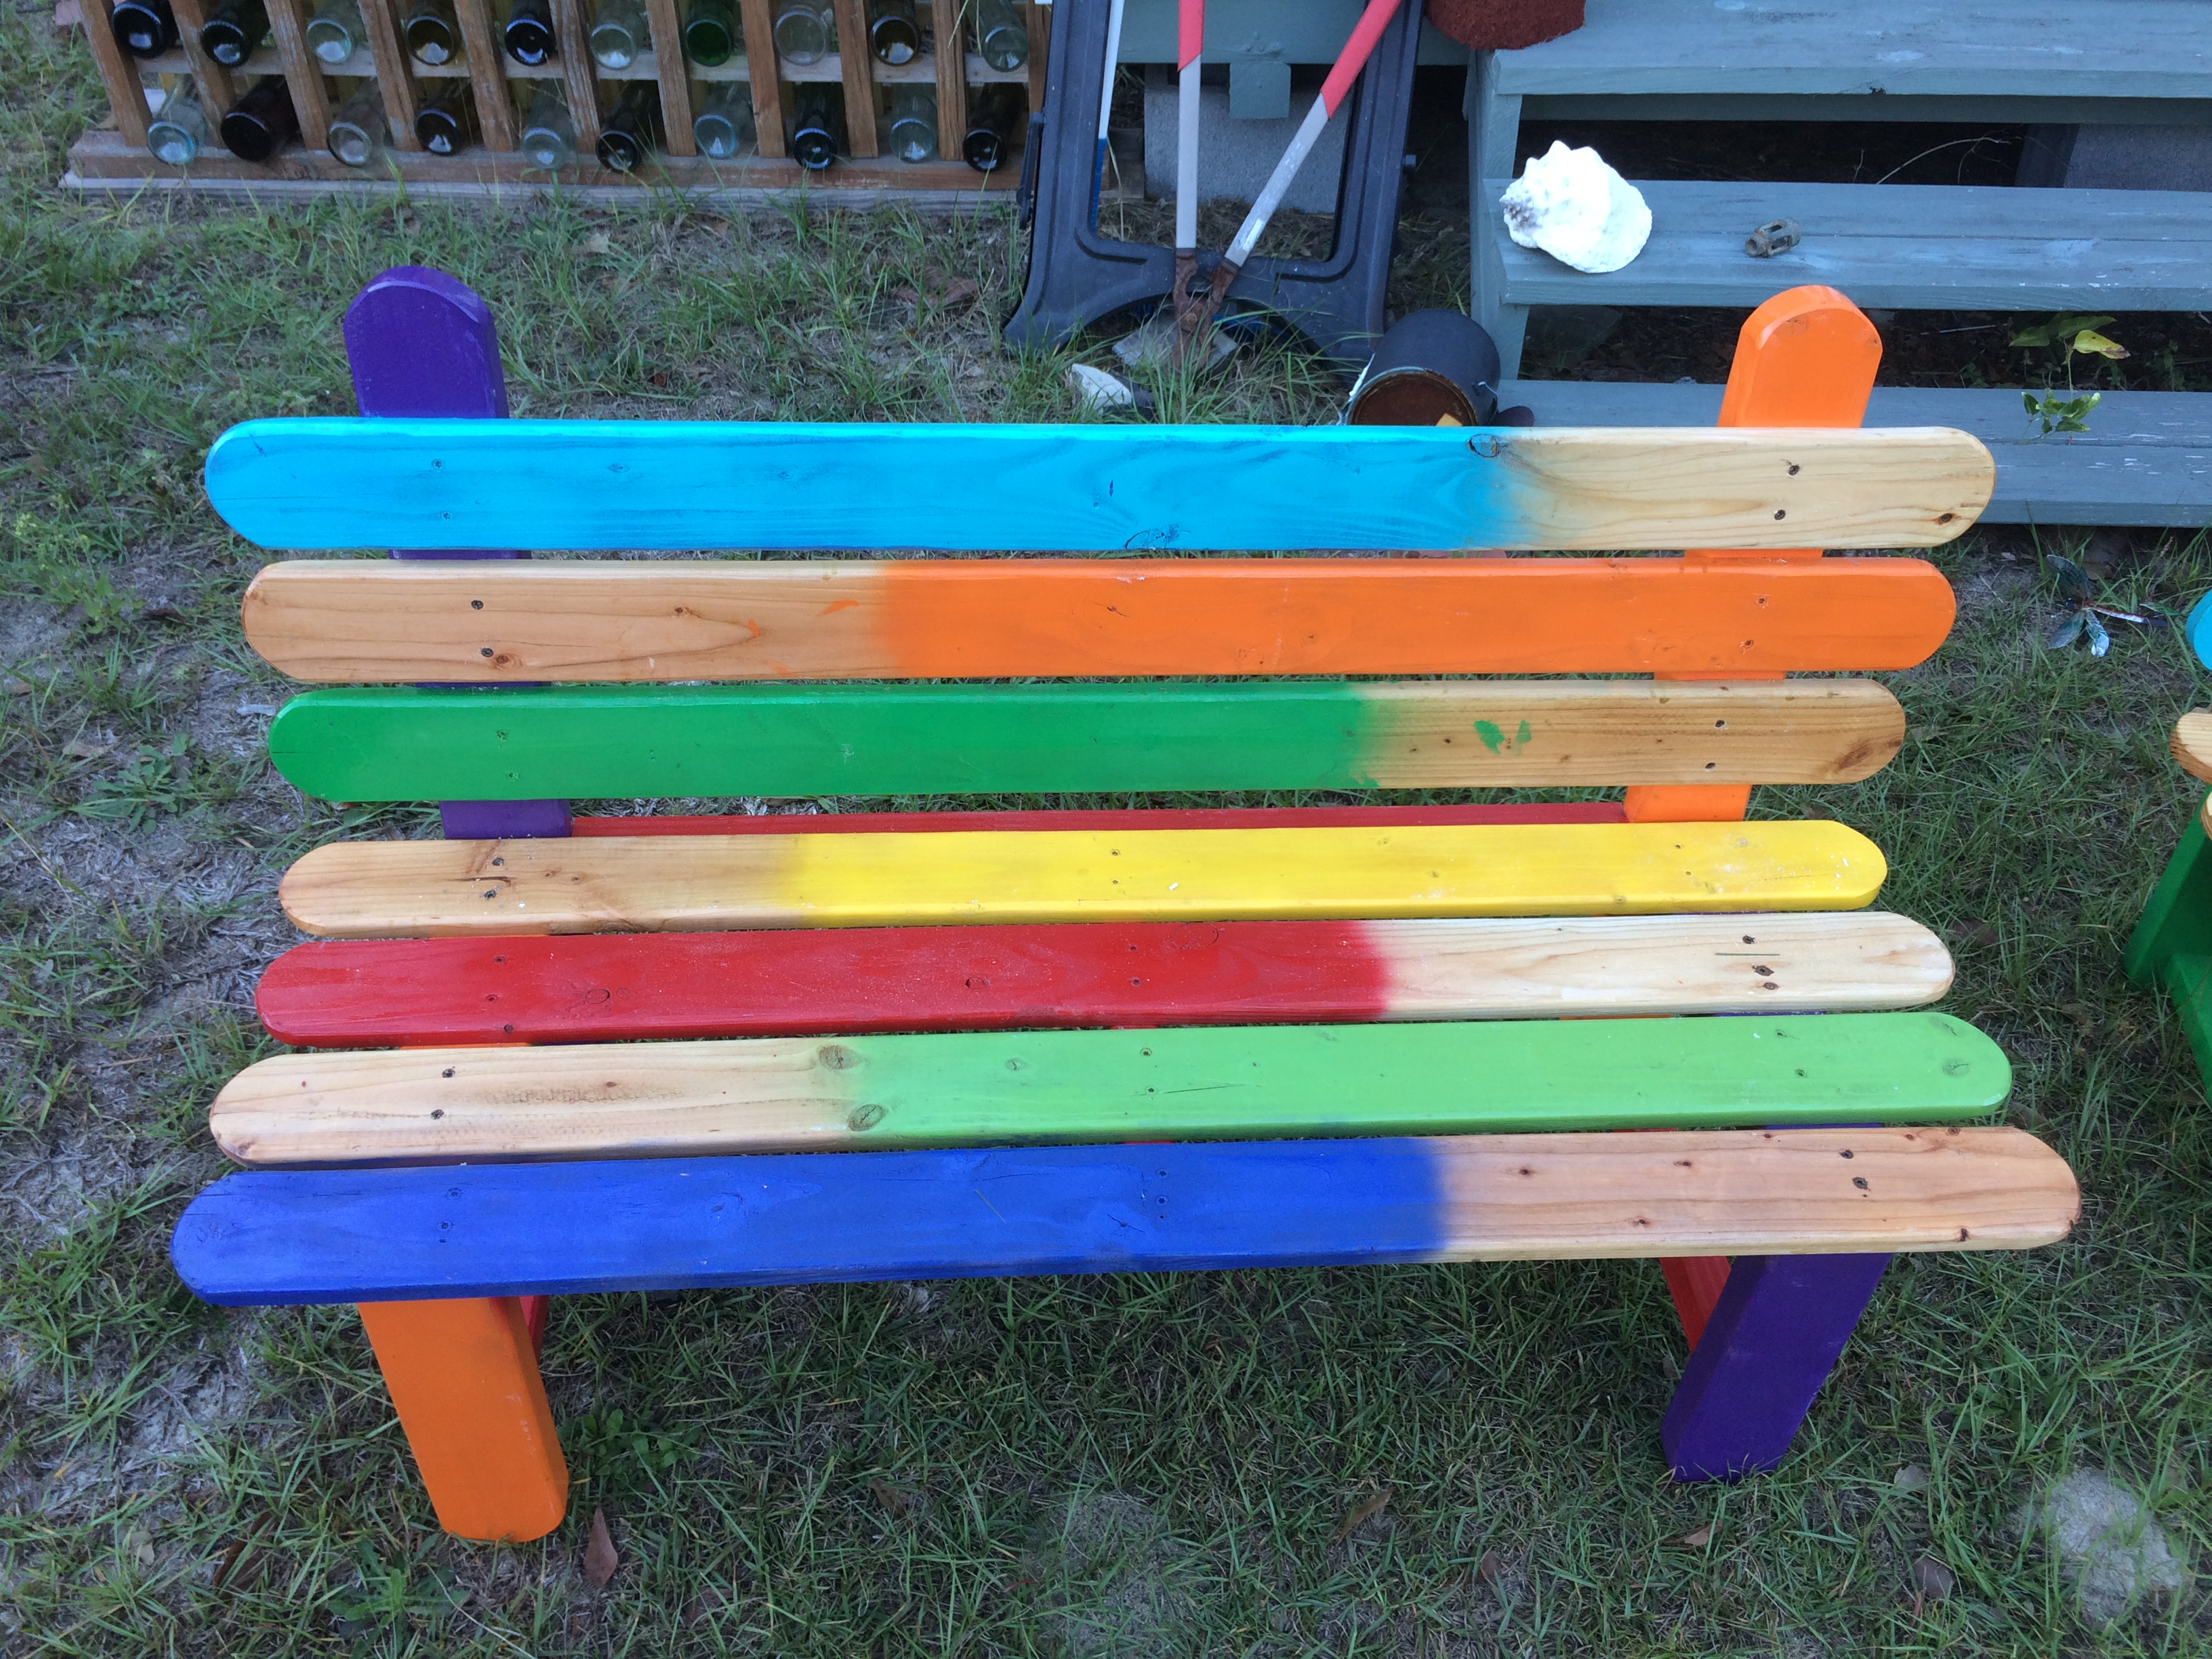 Exceptionnel I Can Make Any Arrangement Of Colors You Might Want. Just Let Me Know And I  Will Build One To Suit You.